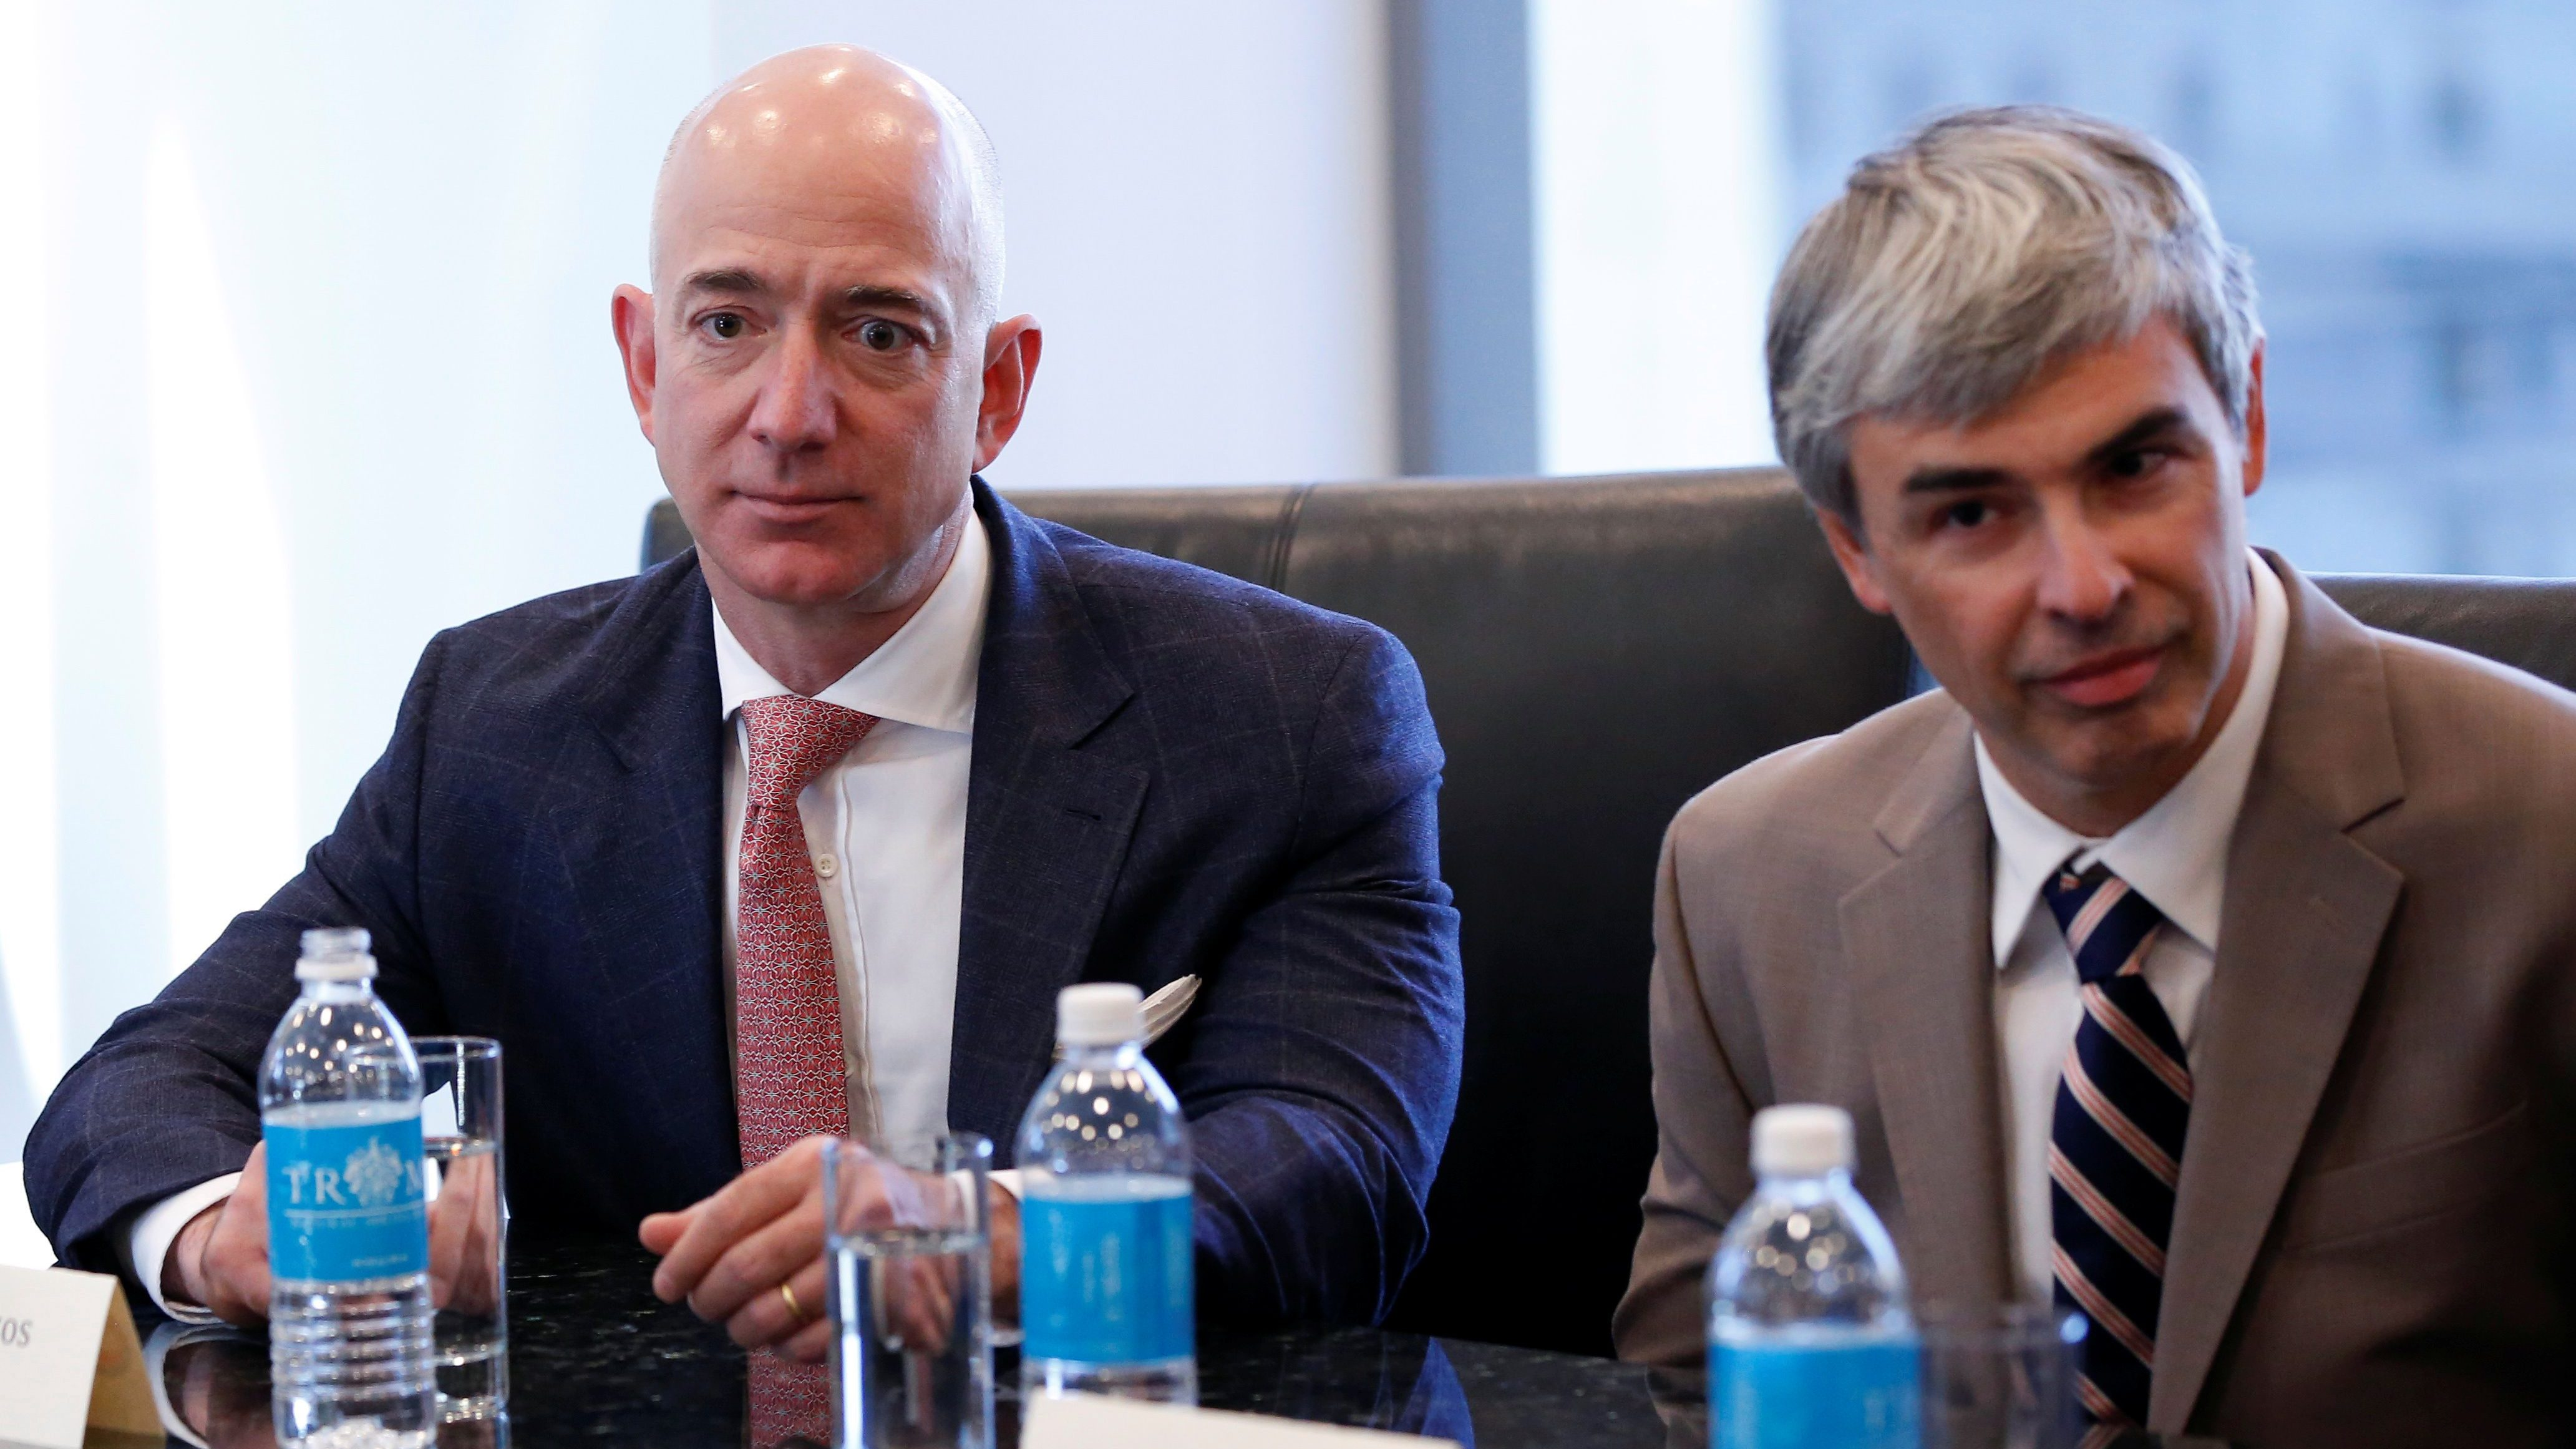 (L-R) Amazon CEO Jeff Bezos and Larry Page, CEO and Co-founder of Alphabet, sit during a meeting with U.S. President-elect Donald Trump and technology leaders at Trump Tower in New York, U.S., December 14, 2016. REUTERS/Shannon Stapleton - RC1E751AF050